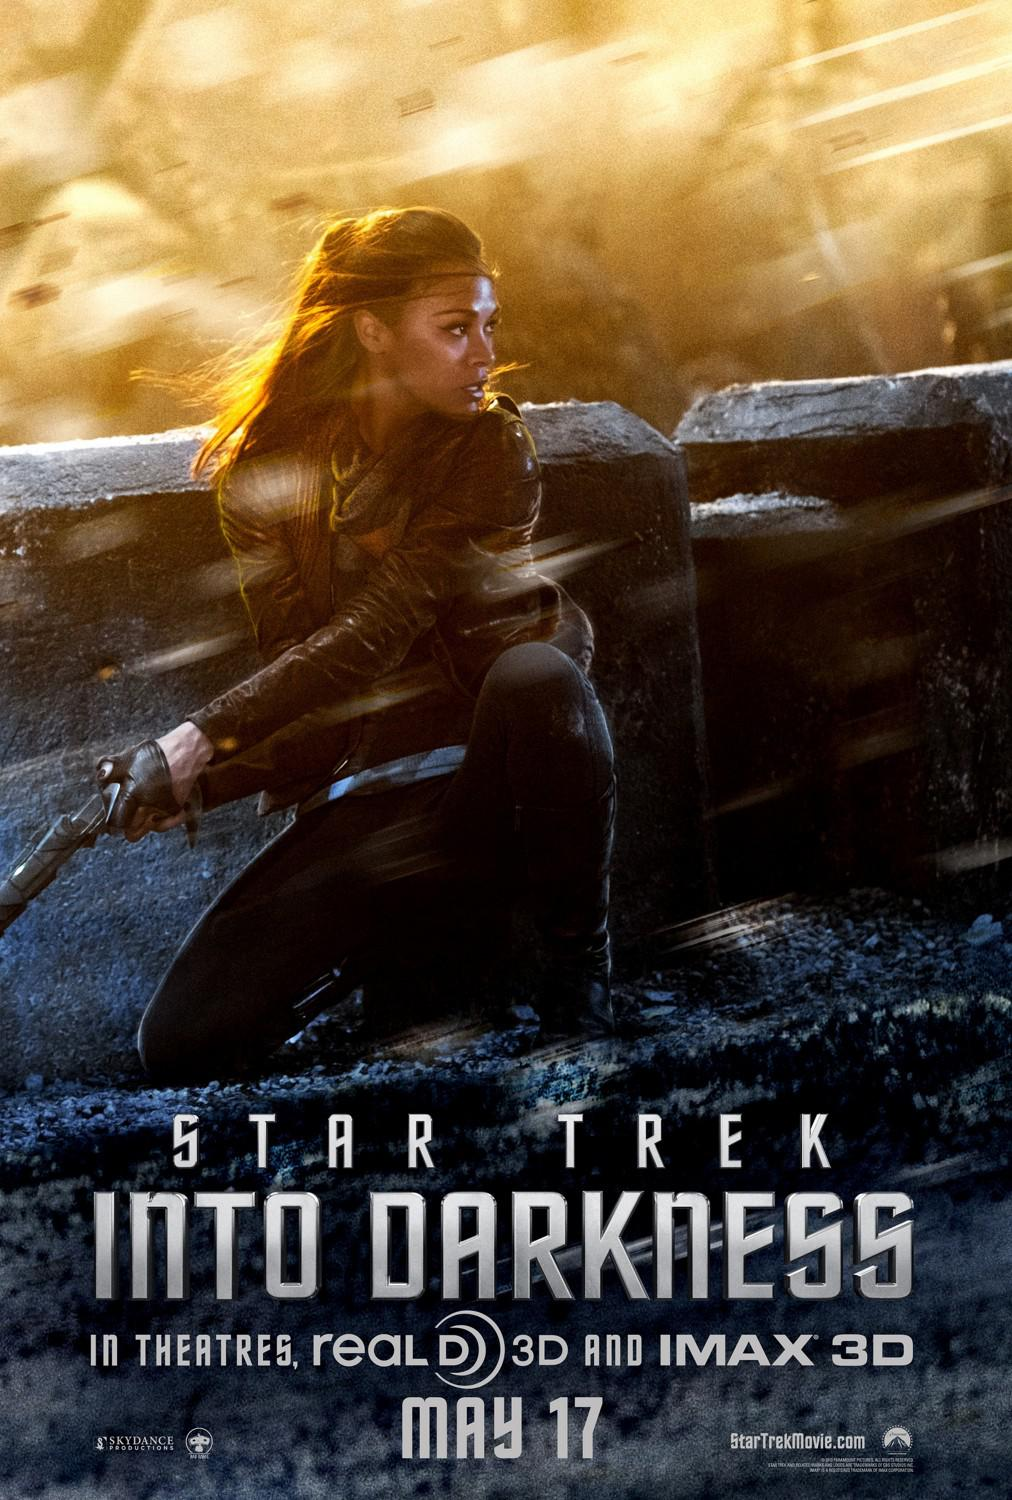 Star Trek 12 - Star Trek into Darkness - poster